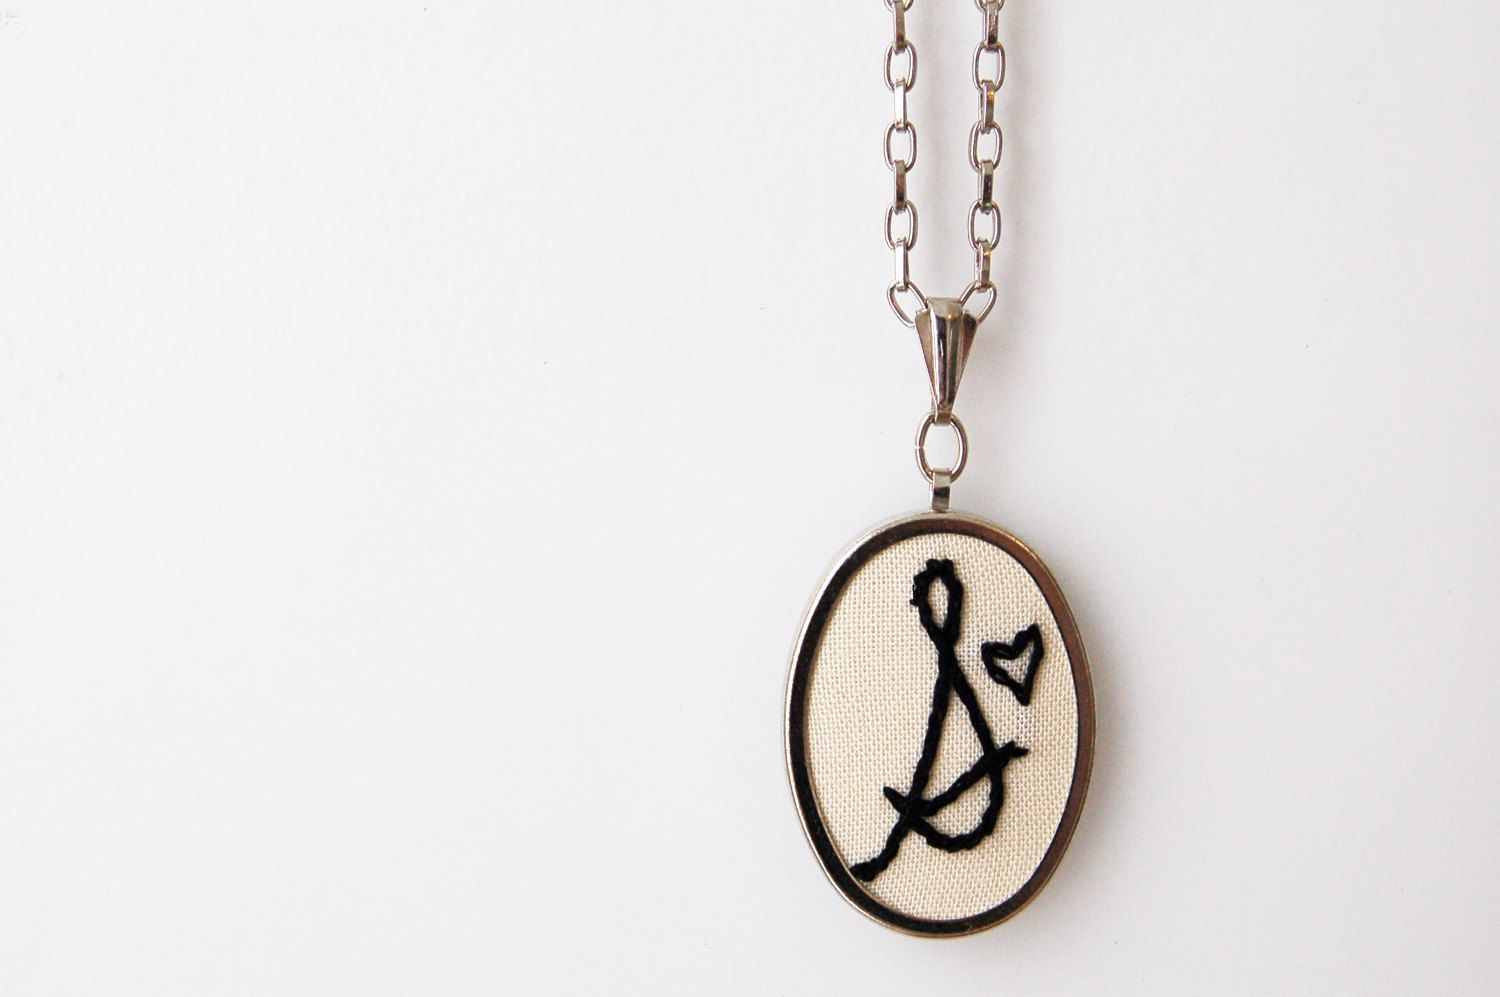 Personalized initial necklace from Merriweather Council. #erindollar